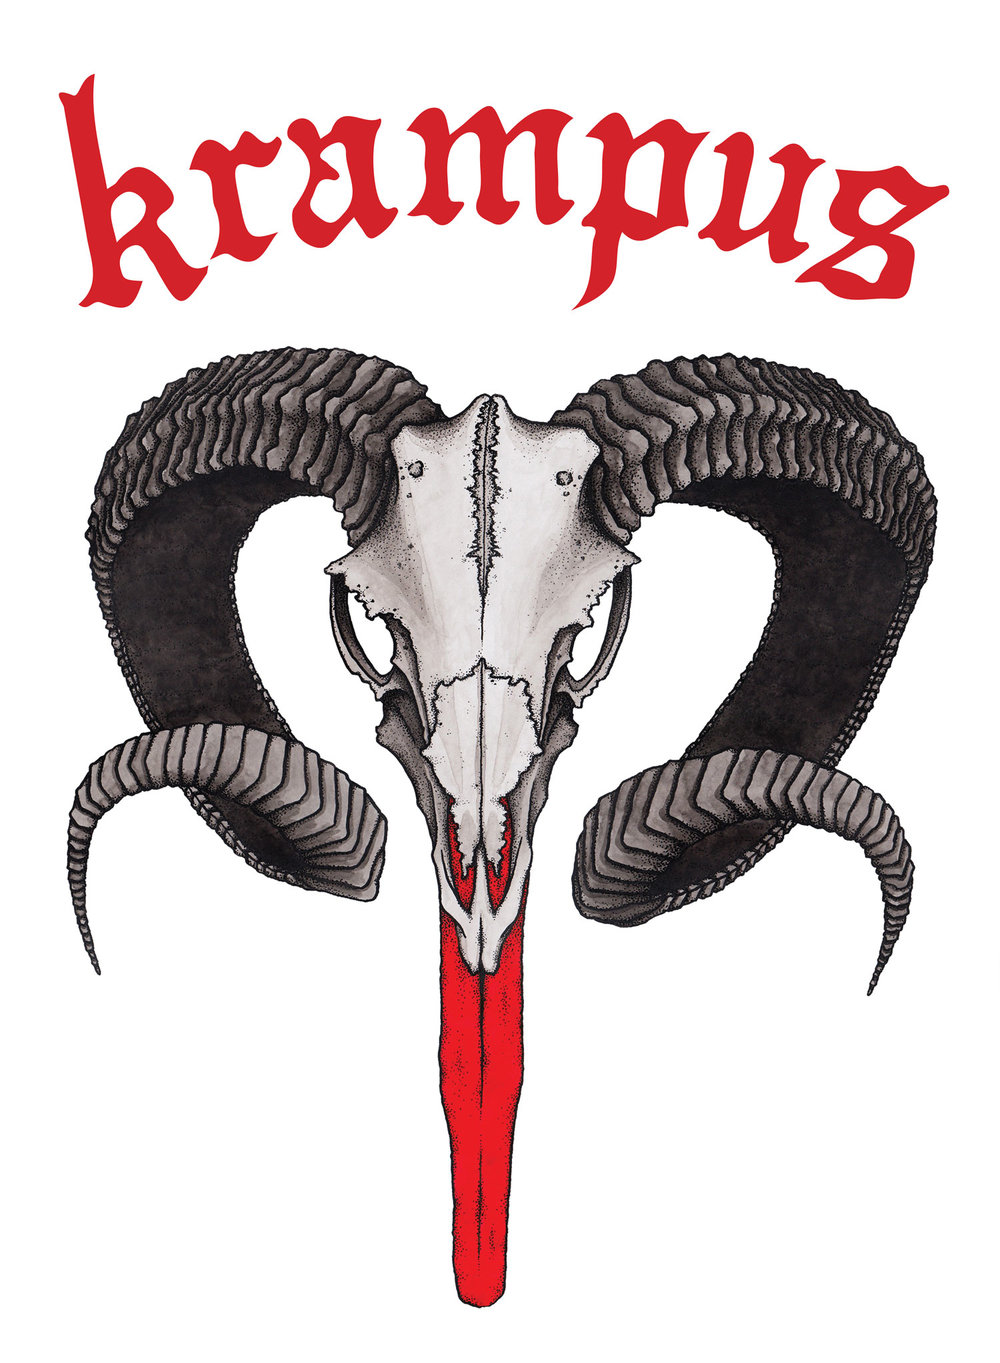 krampus-ram-skull-tongue-horns-krampusnacht-illustration-matthew-woods.jpg